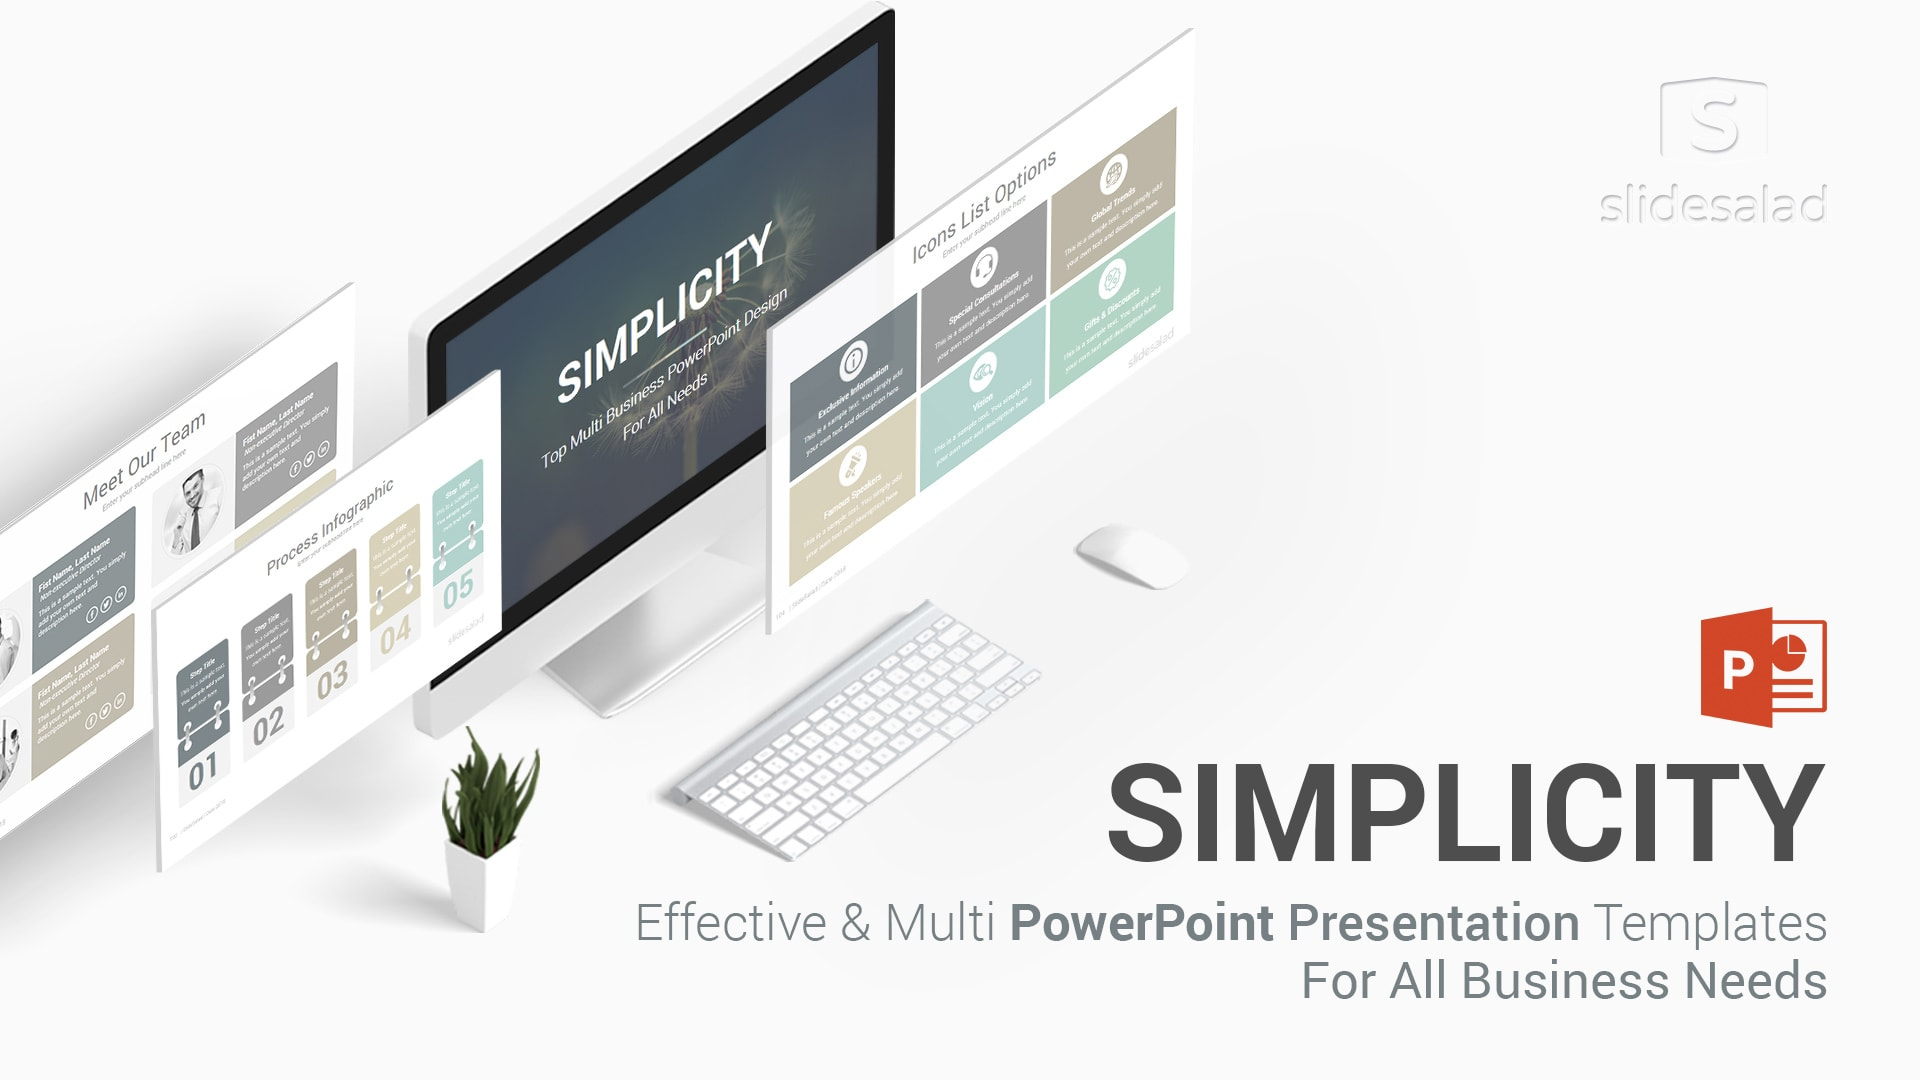 Best Minimalist PowerPoint Templates of 2019 - SlideSalad